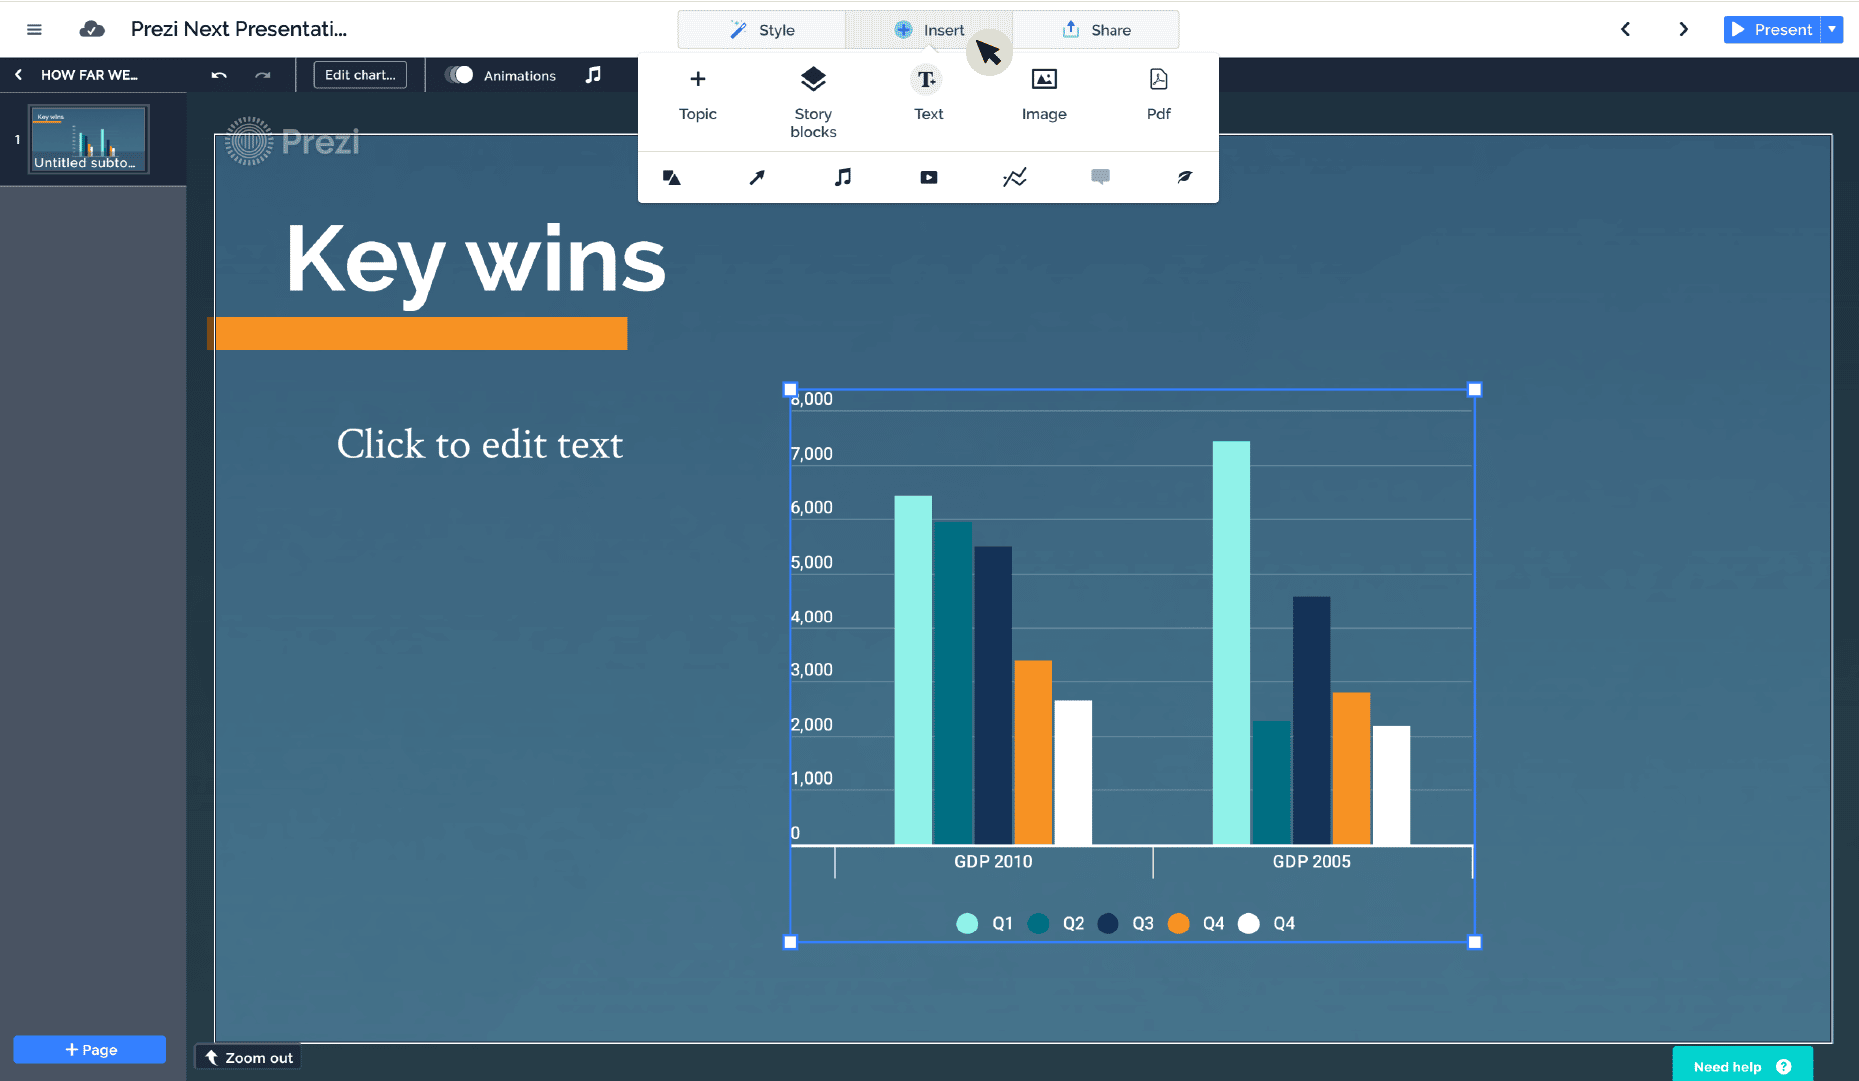 Prezi Next Analytics